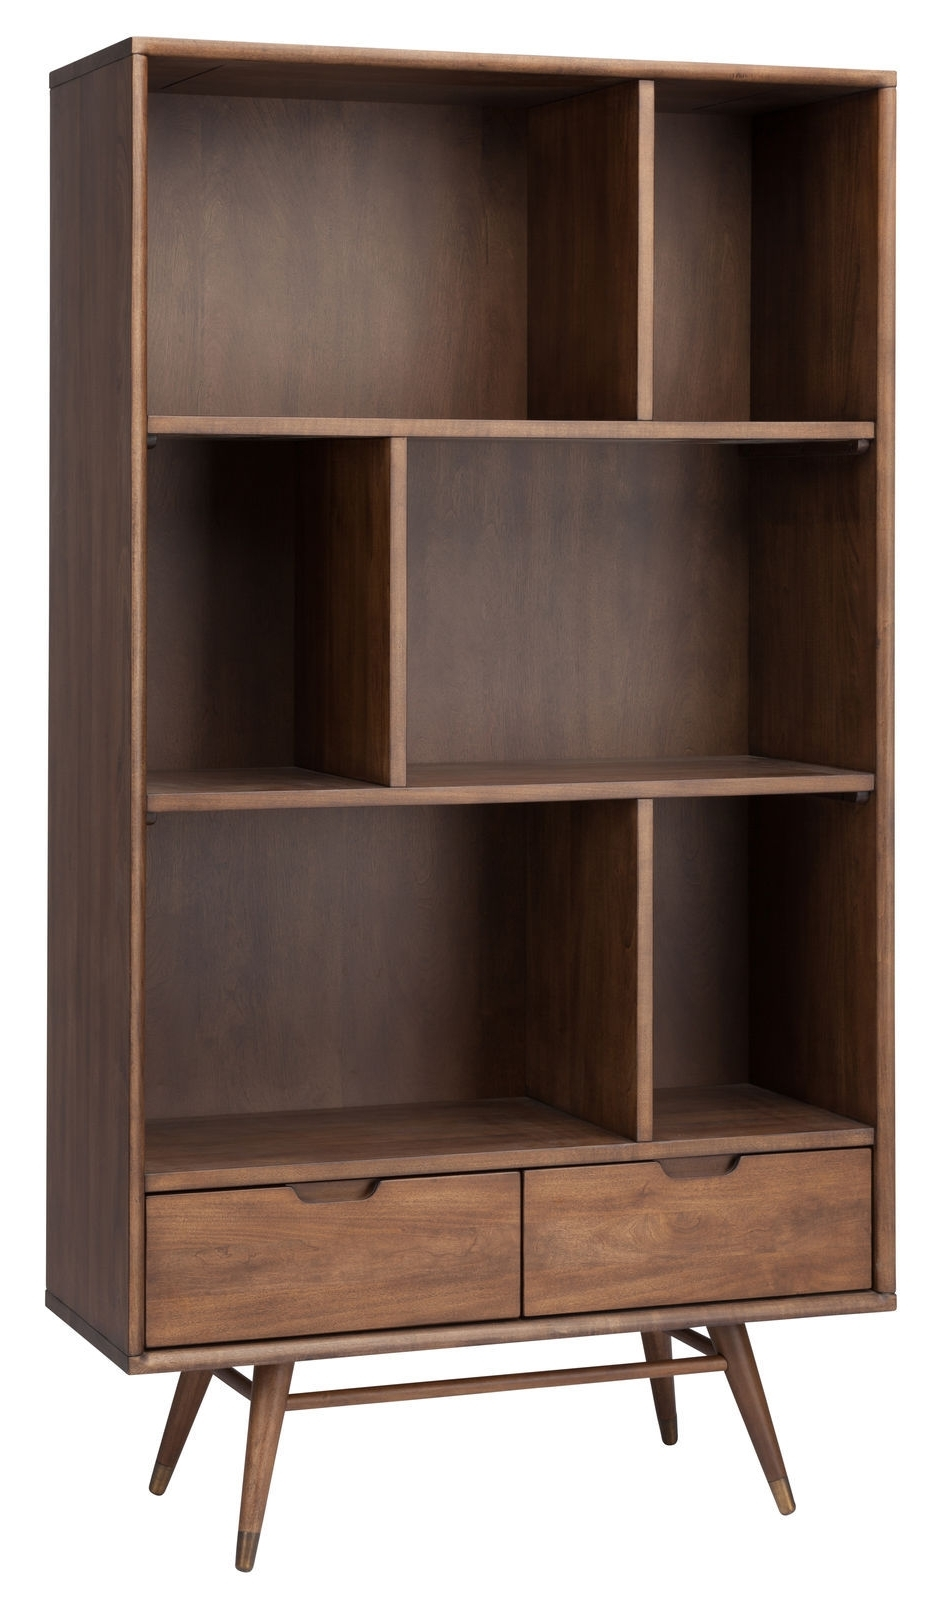 Favorite Large Bookcase In Walnutnuevo – Hgst119 Intended For High Quality Bookcases (View 6 of 15)